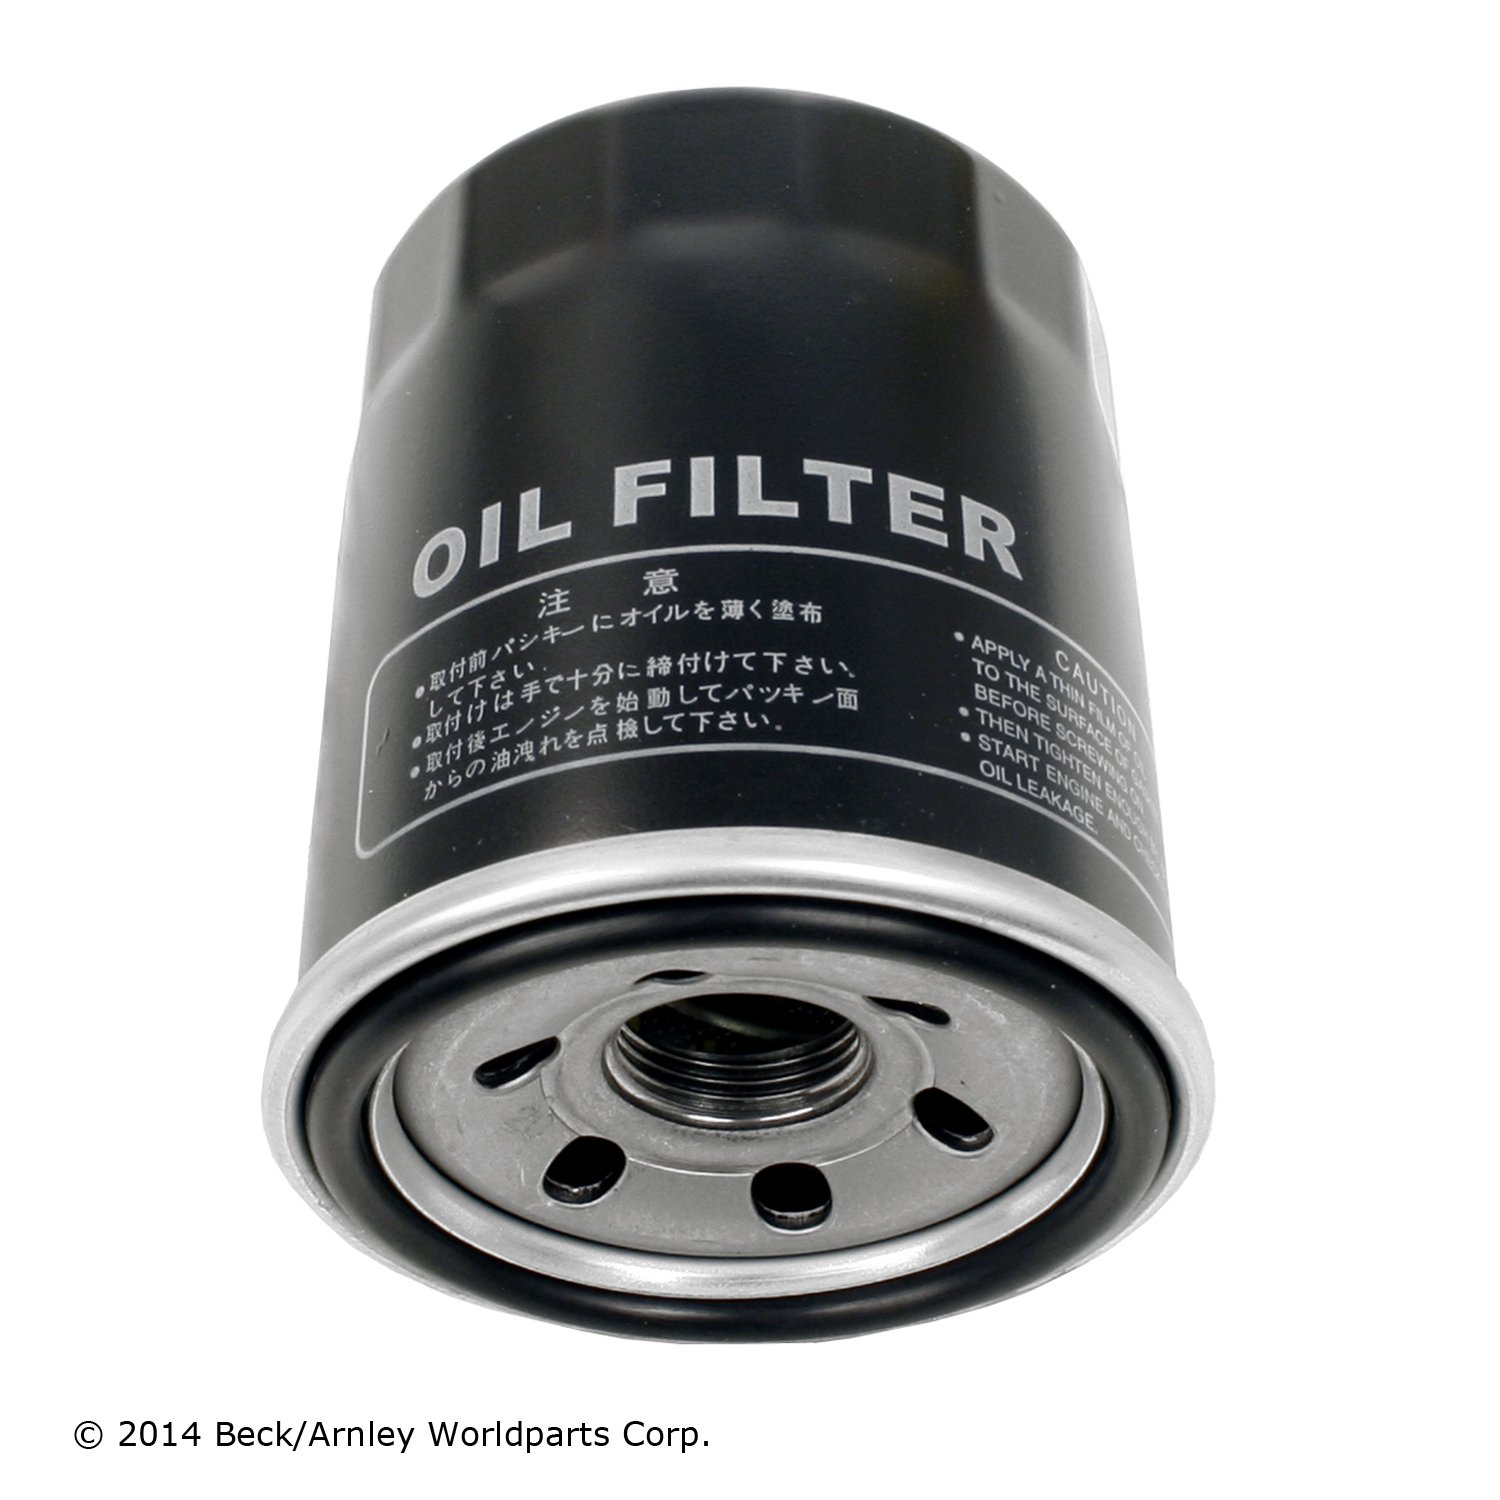 ... 1998 Mazda 626 Engine Oil Filter BA 041-8075